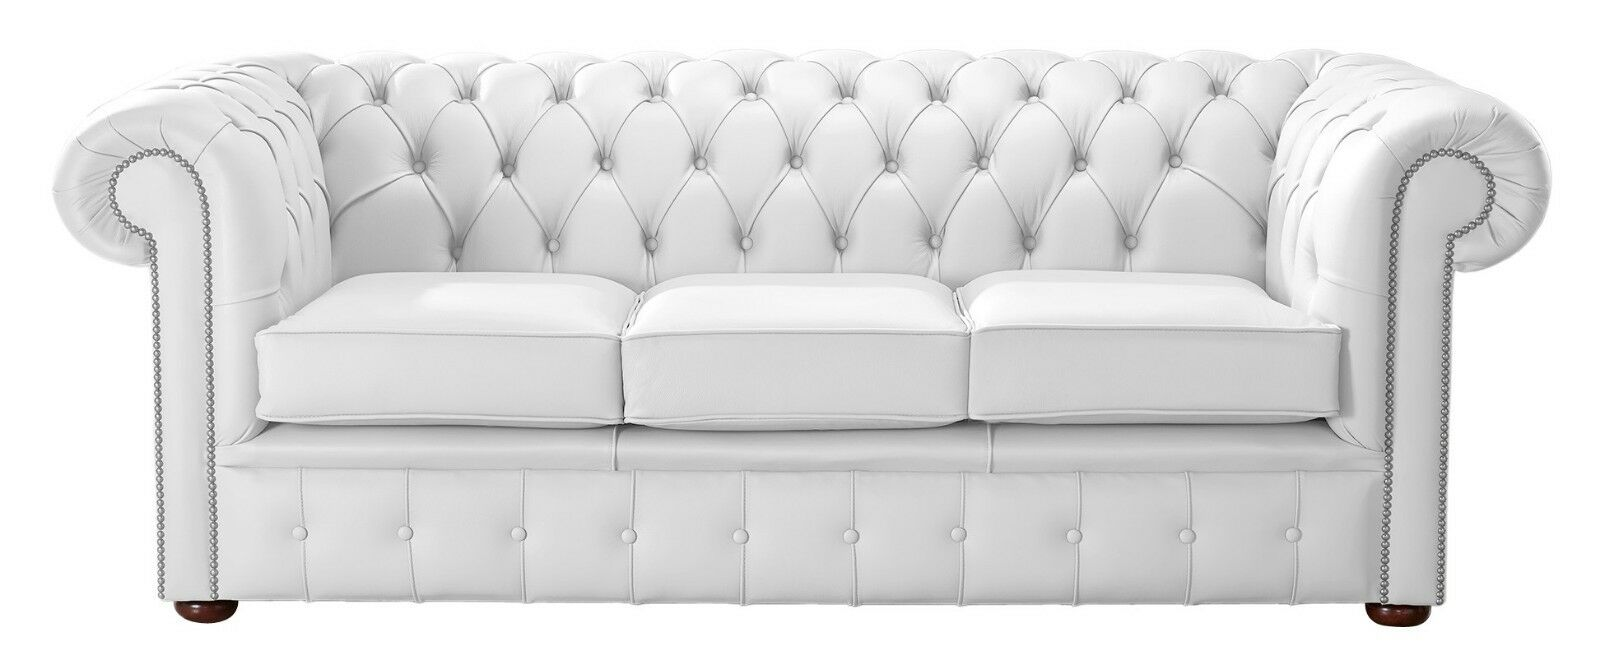 Magnificent Details About Modern Leather Chesterfield Handmade 3 Seater Sofa Settee Shelly Winter White Gmtry Best Dining Table And Chair Ideas Images Gmtryco